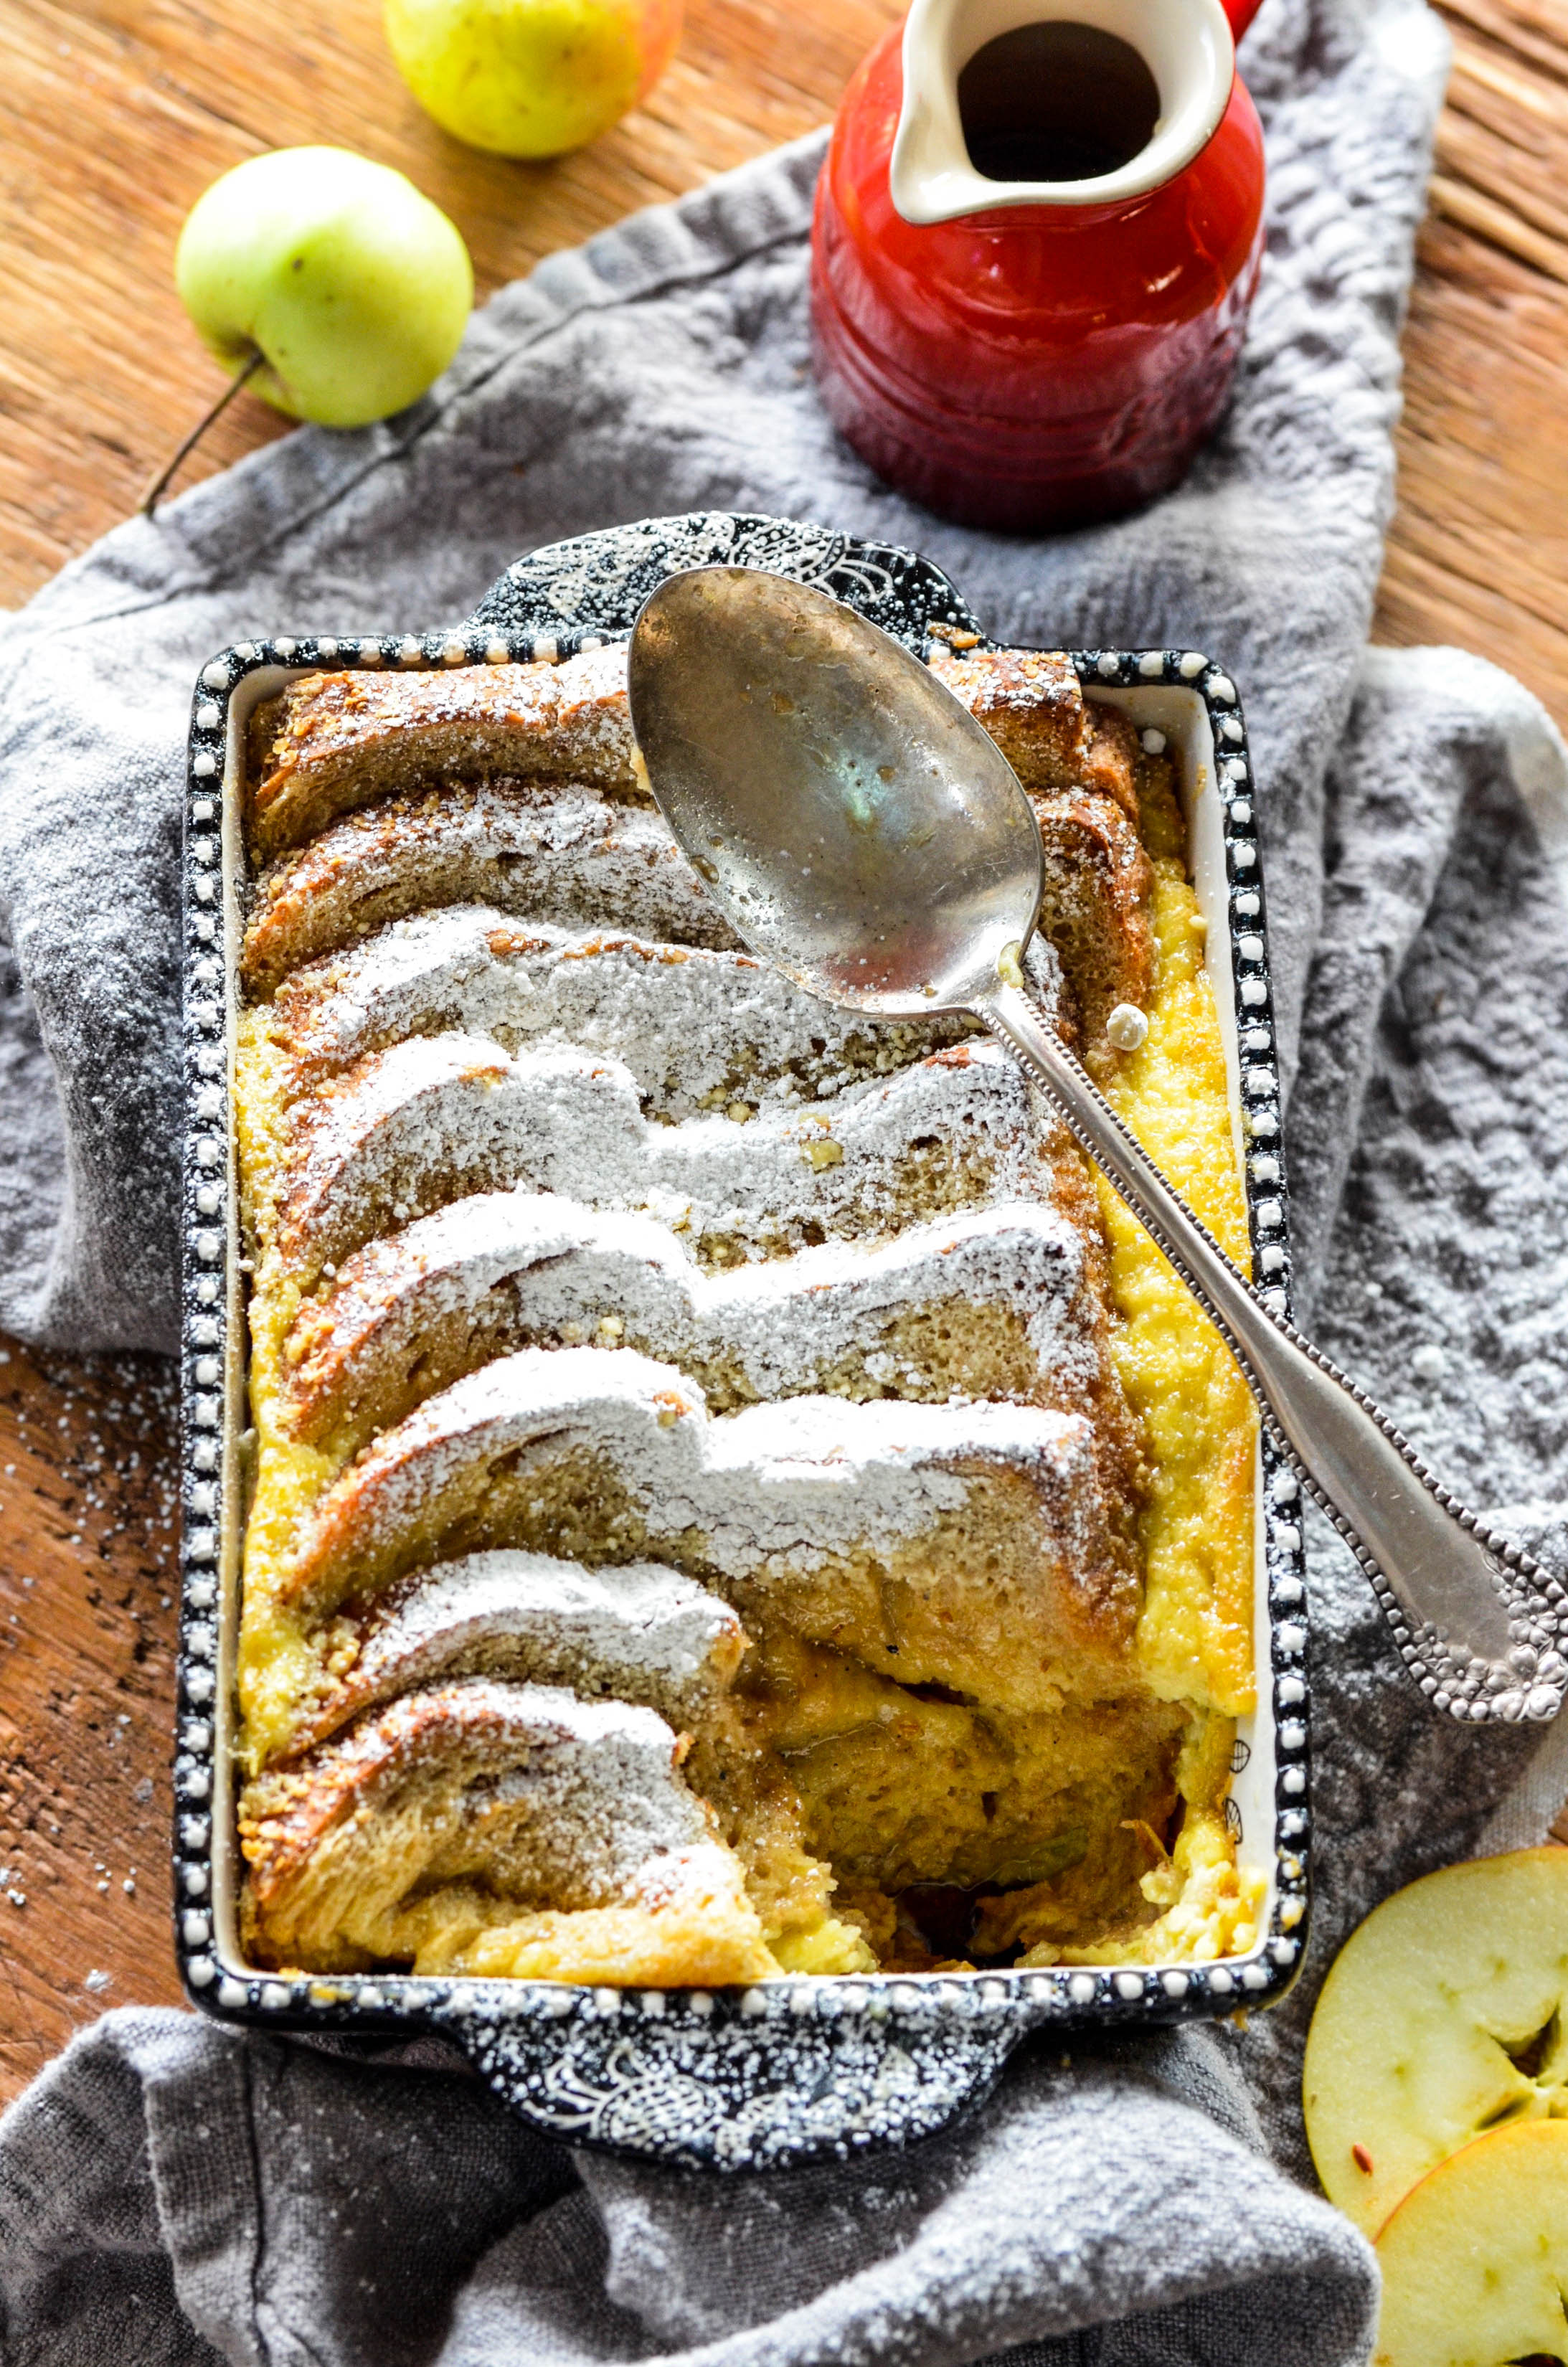 Apple Cardamom Bread Pudding is the best bread pudding we have ever had! This Apple Cardamom Bread Pudding recipe has sweet apples and citrusy cardamom for an indulgent dessert perfect for your next dinner party!